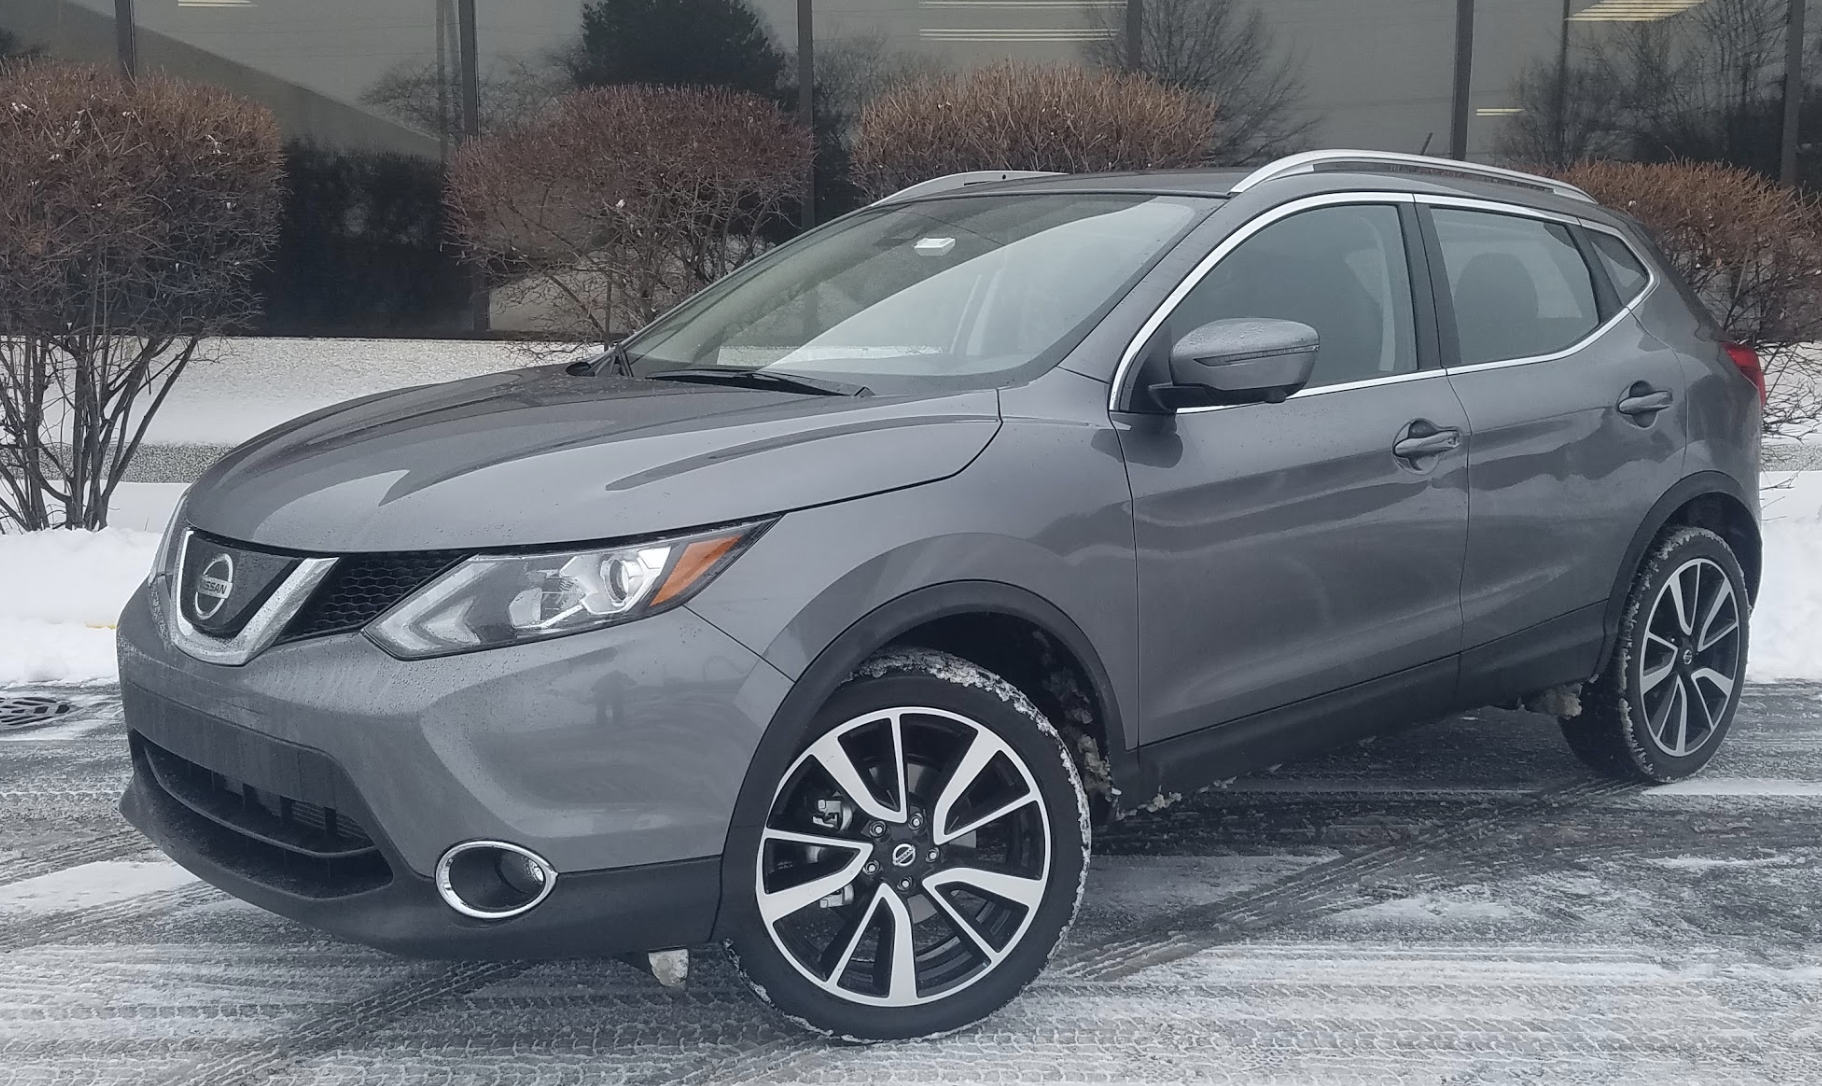 2019 Nissan Rogue Sport The Daily Drive | Consumer Guide®